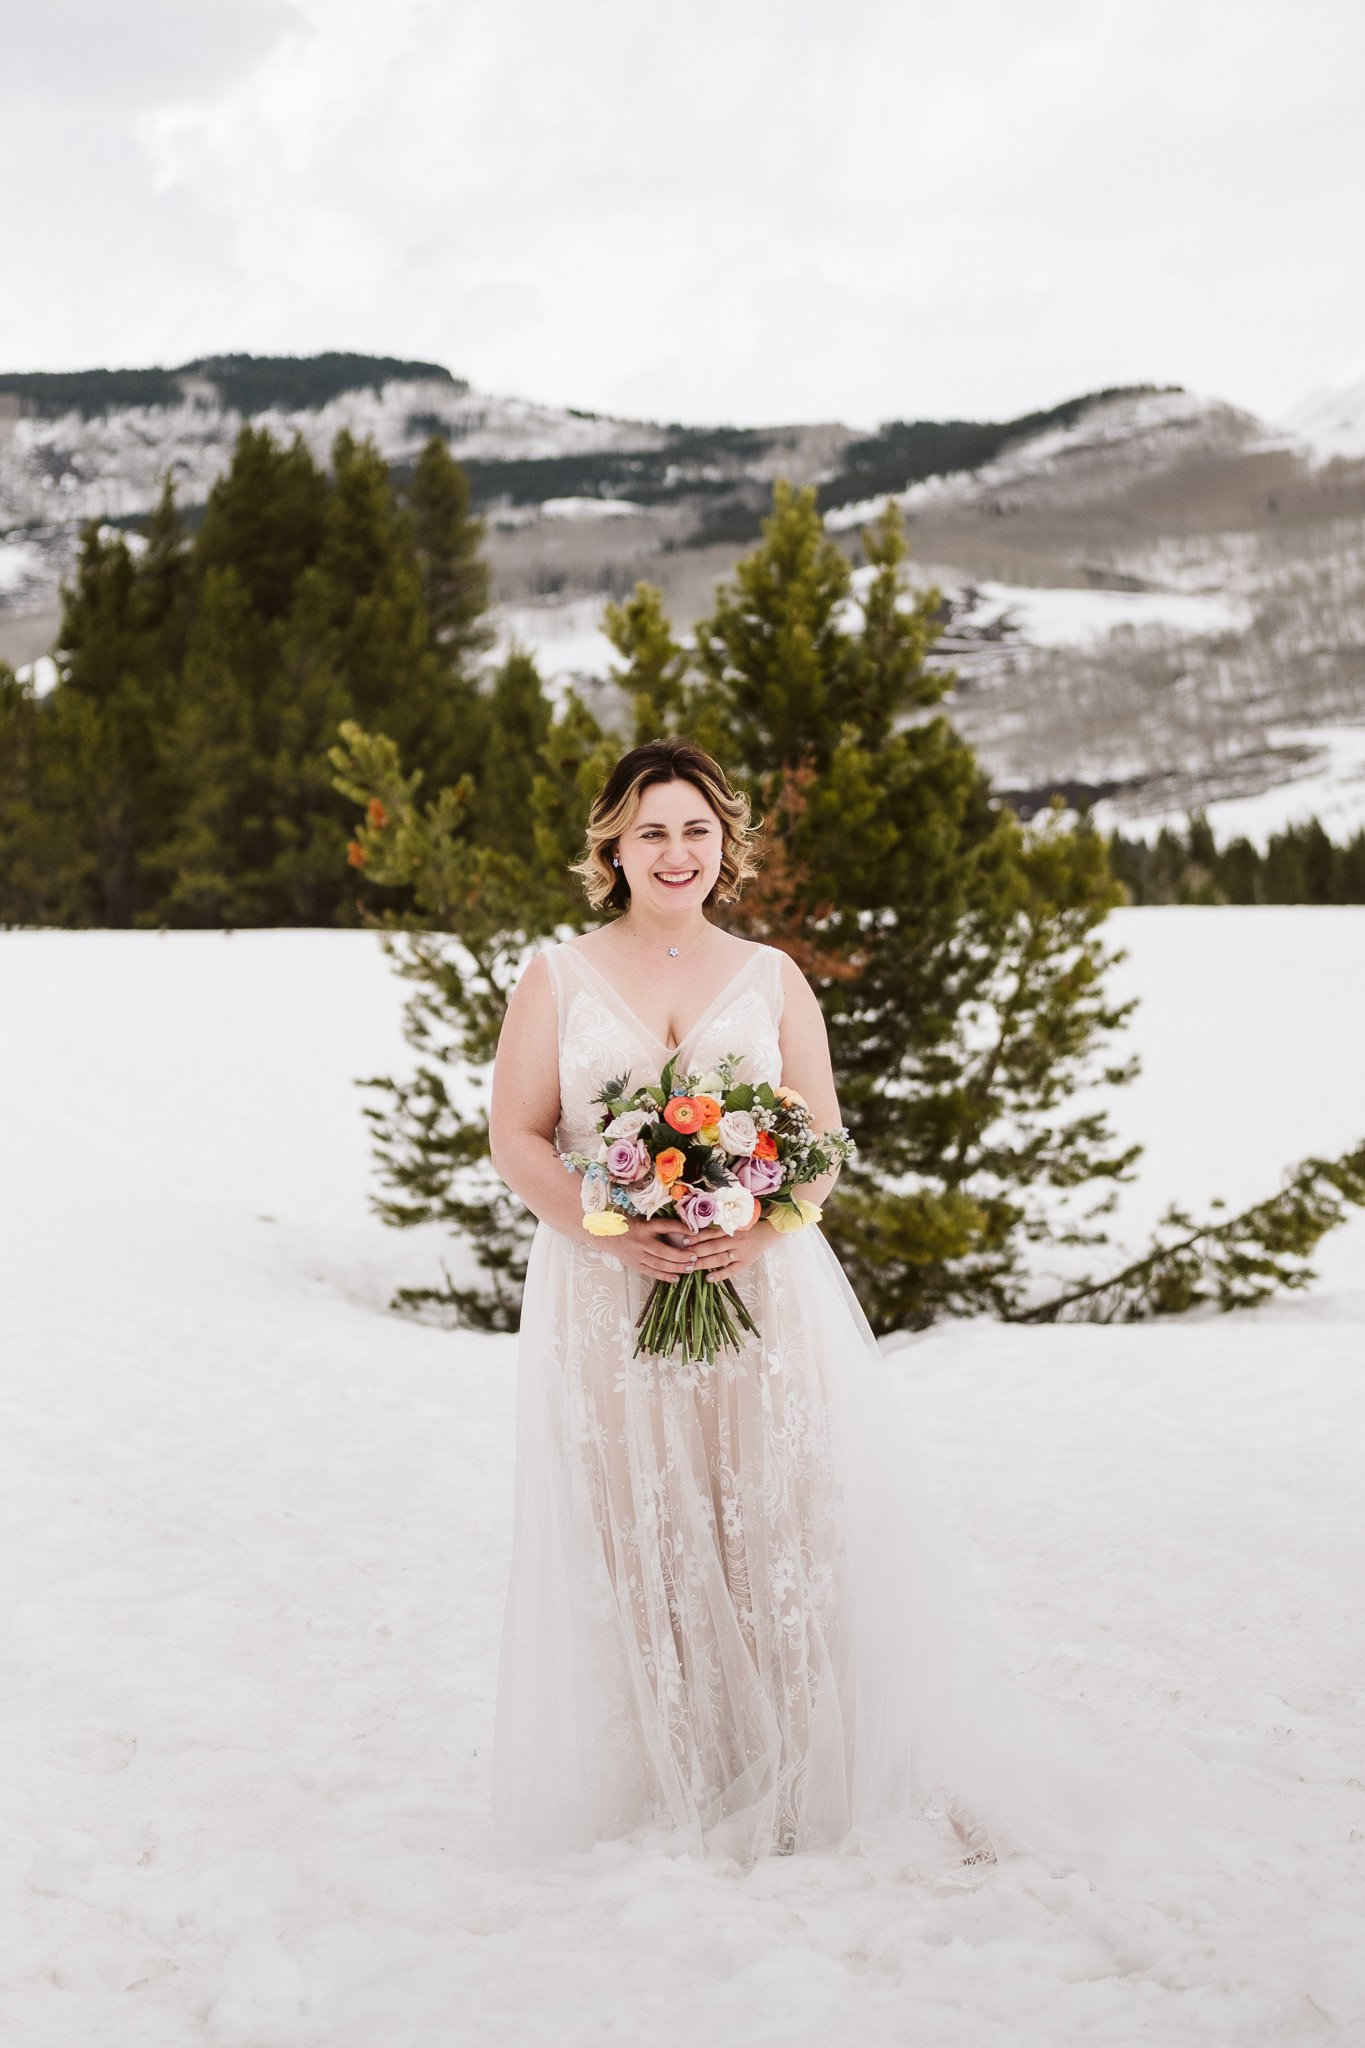 Bride holding Spring colored wedding bouquet by From the Ground Up Flowers in Crested Butte, blush wedding dress in snow, bridal portrait